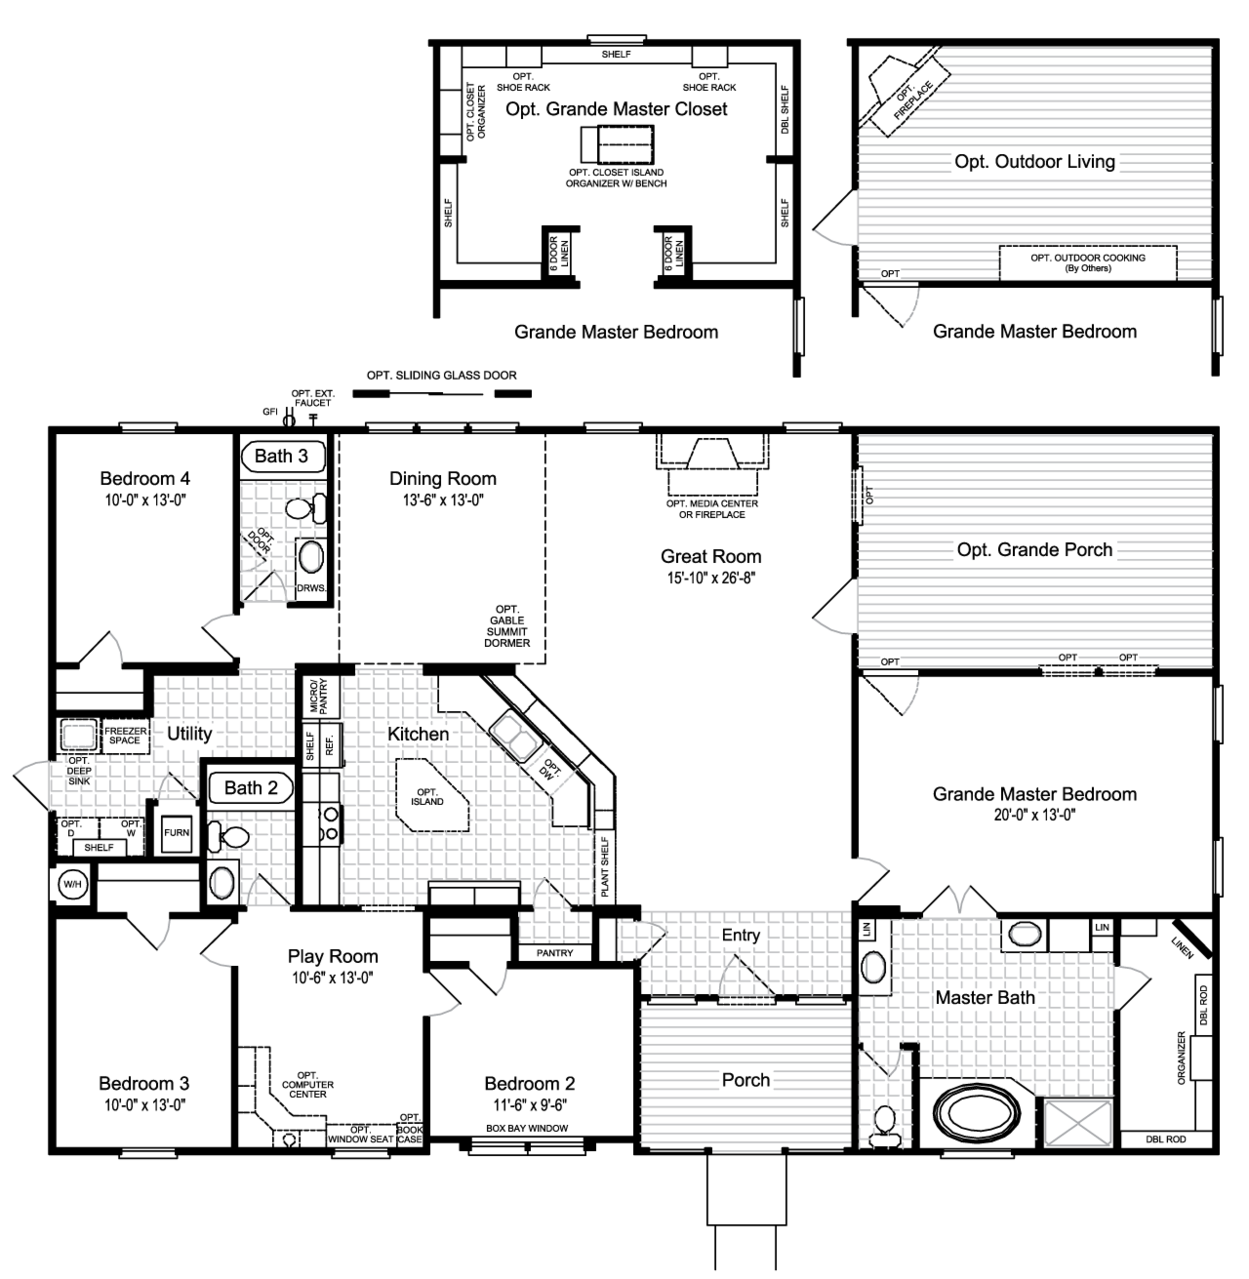 View the hacienda ii floor plan for a 2580 sq ft palm for Lay out house floor plans